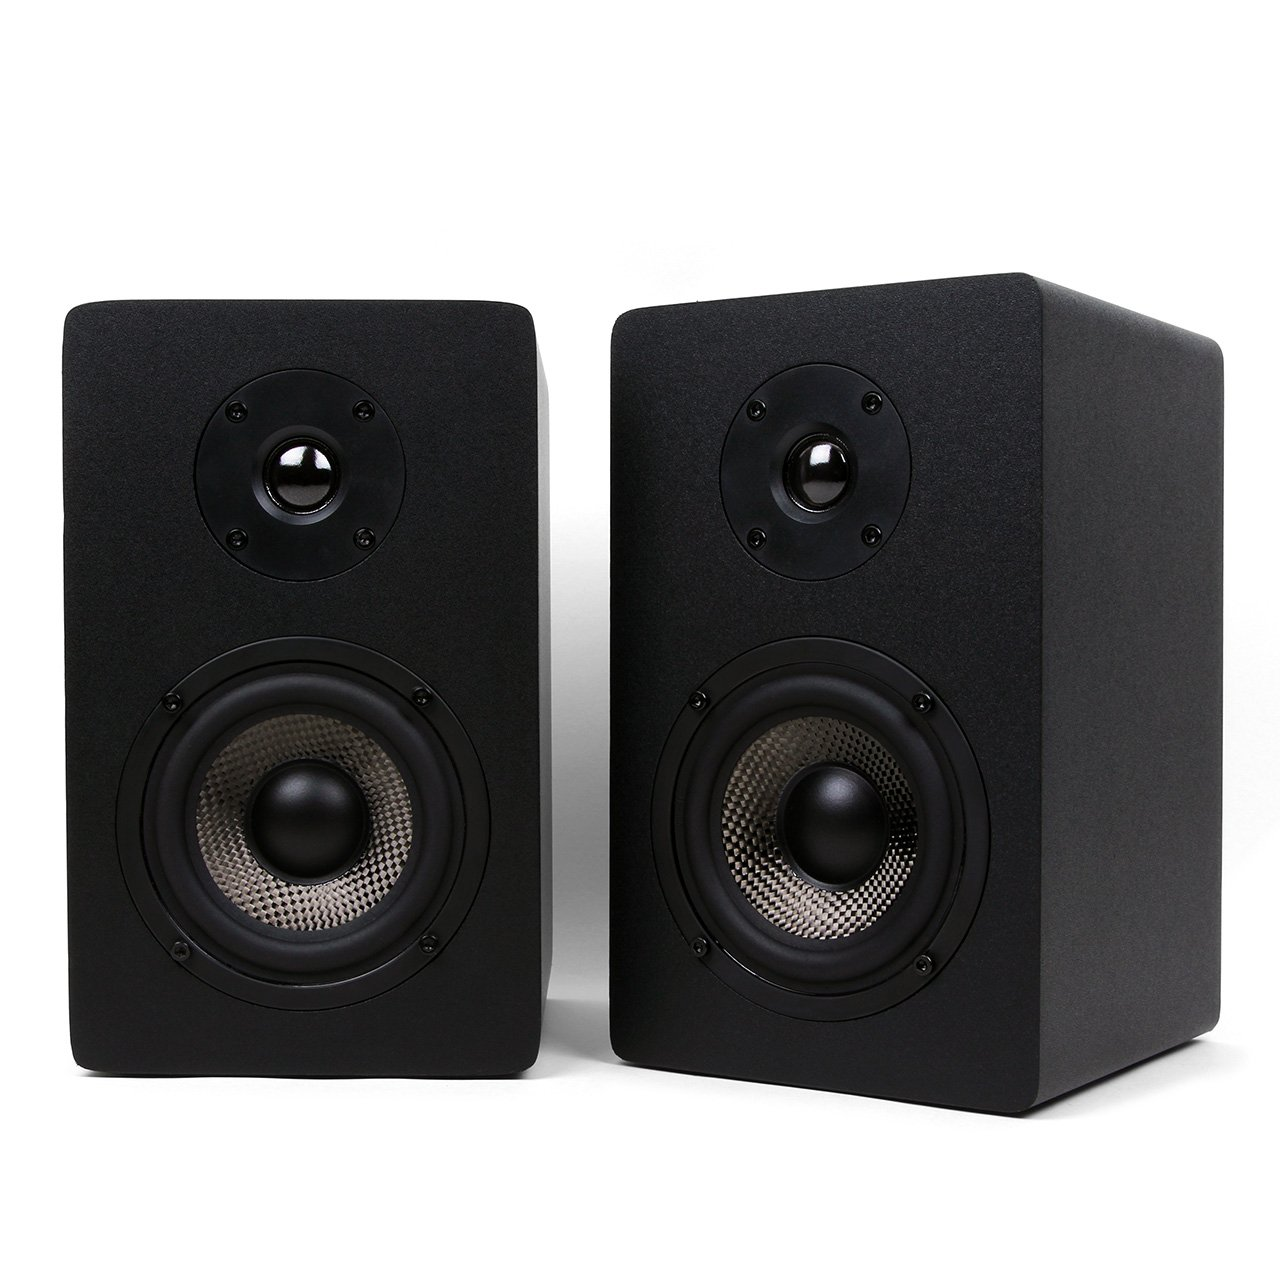 Micca MB42X Bookshelf Speakers With 4-Inch Carbon Fiber Woofer and Silk Dome Tweeter (Black, Pair) by Micca (Image #2)